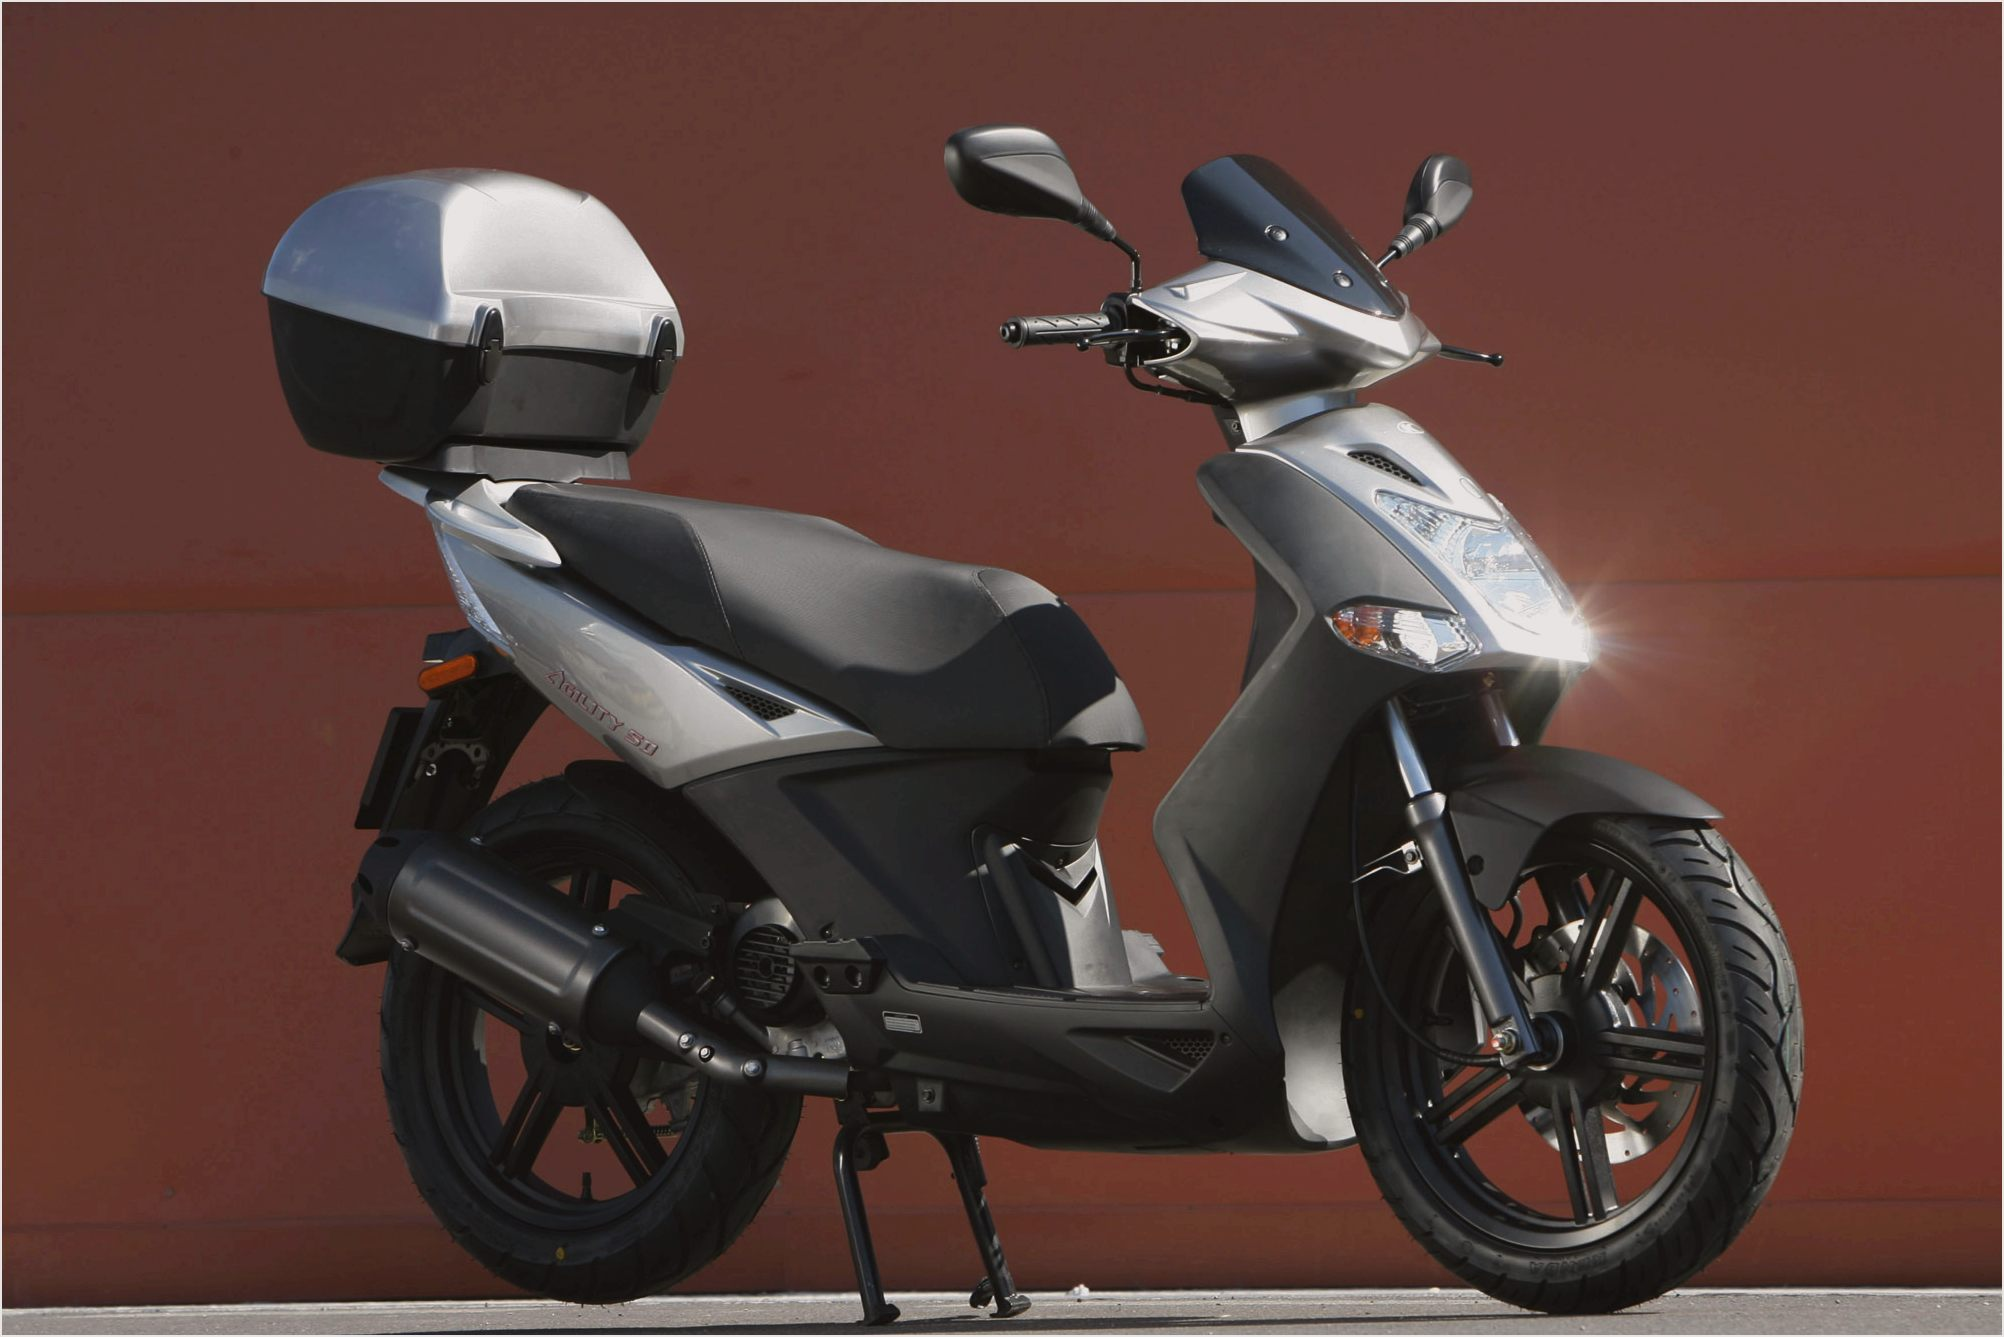 Kymco Agility City 125 images #101824